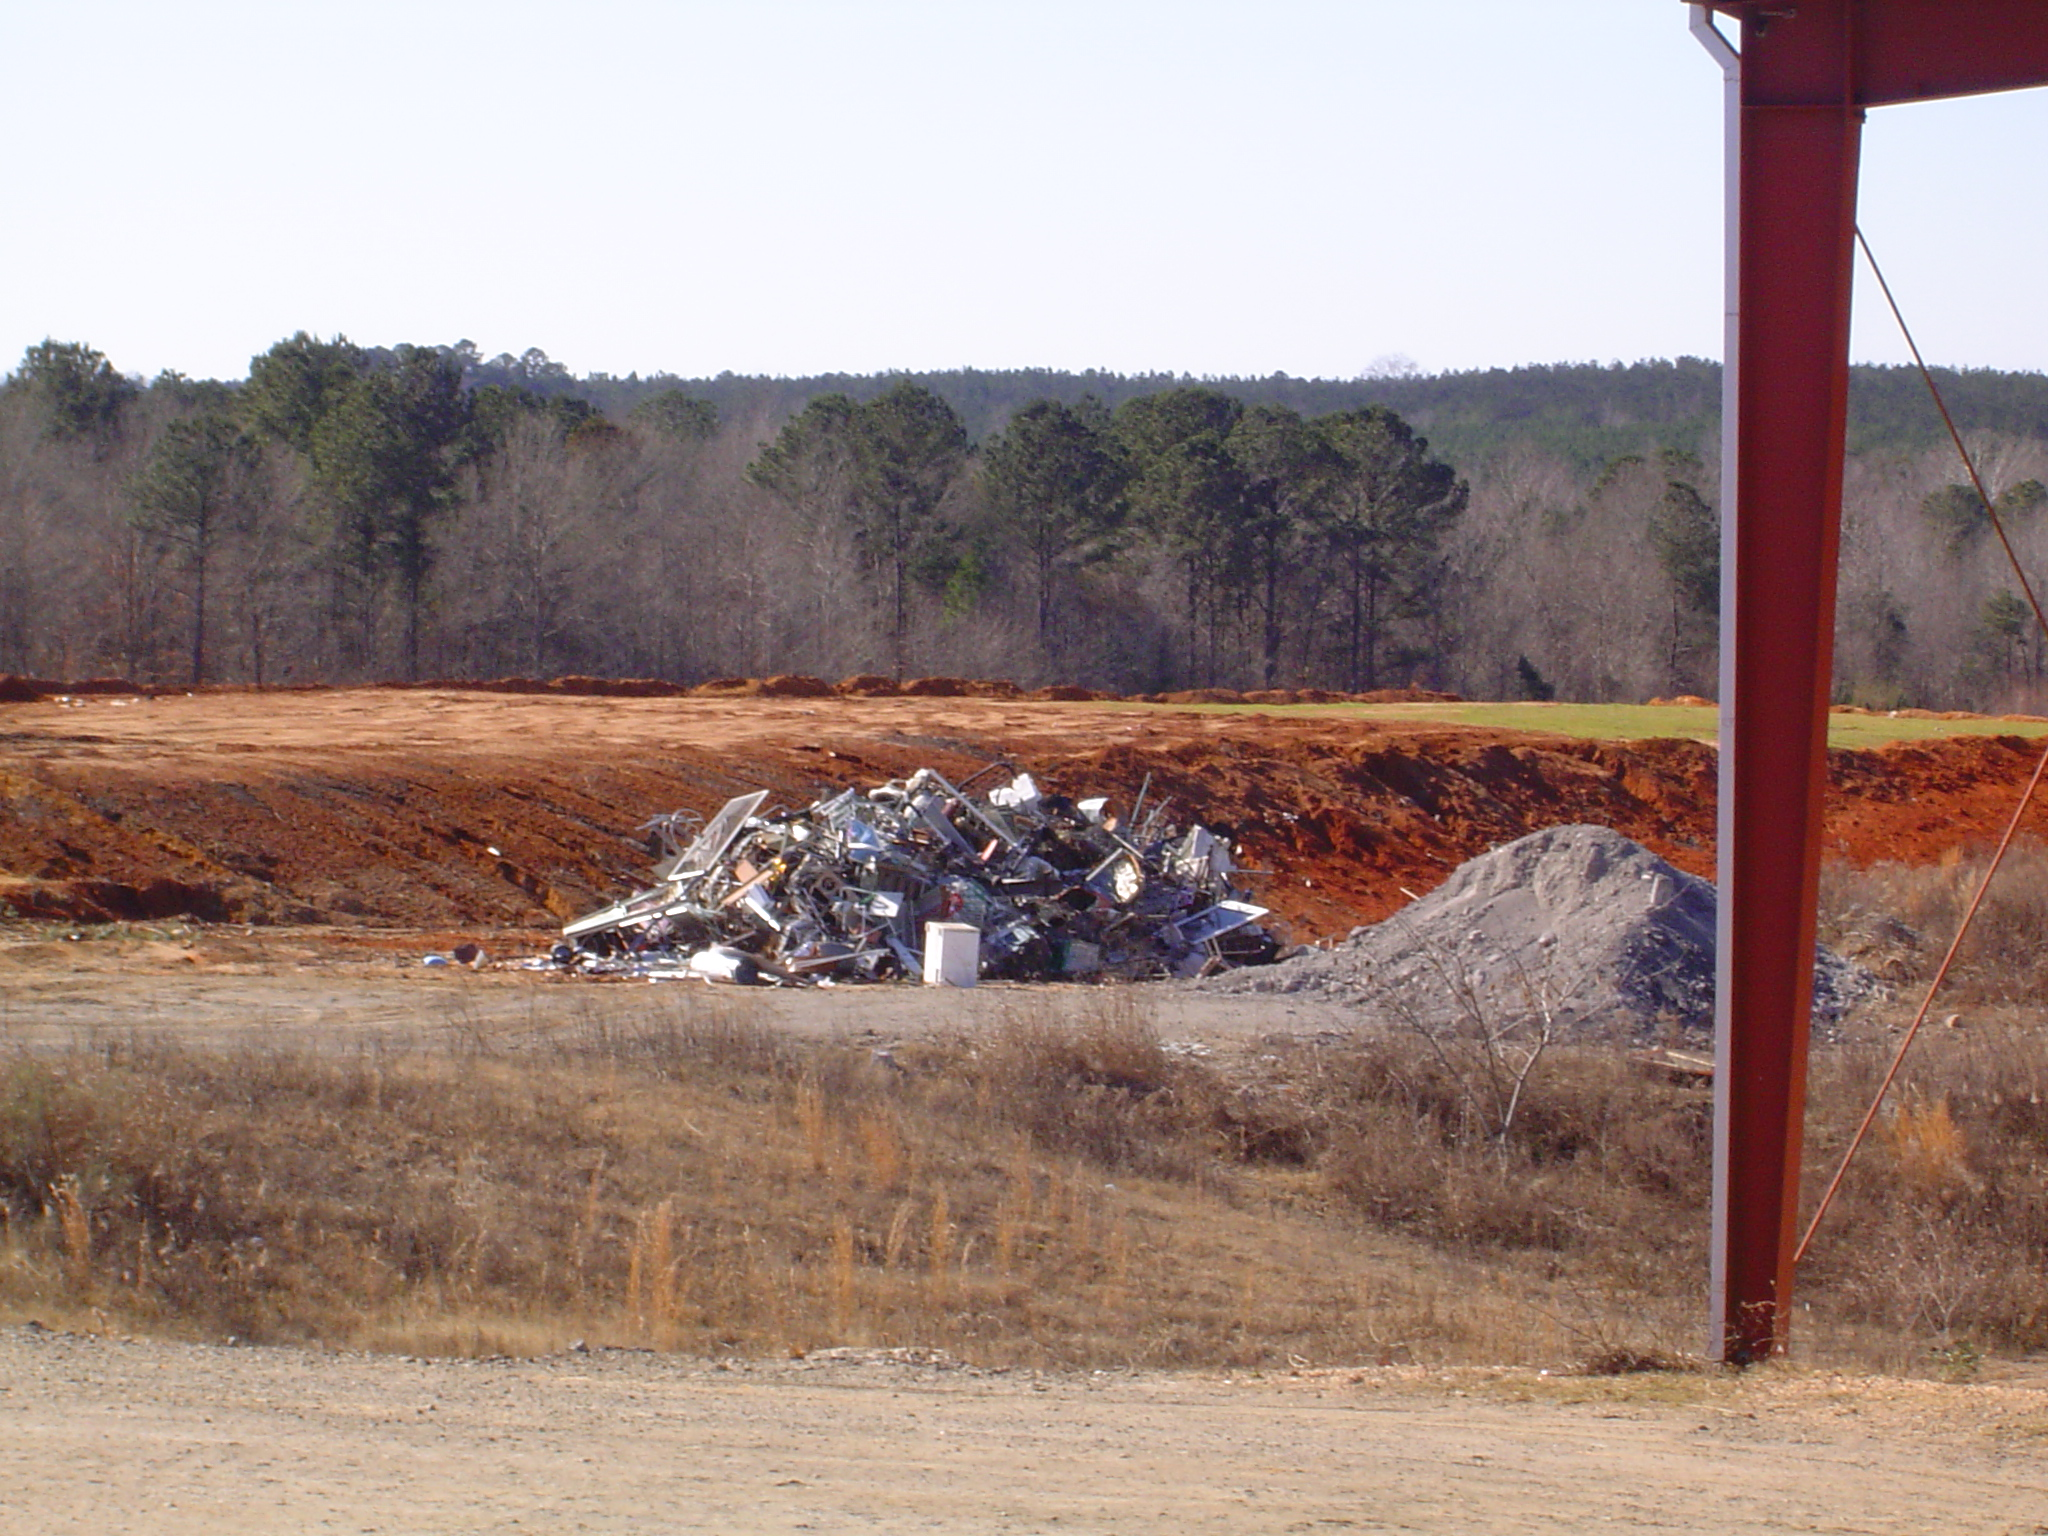 Mississippi newton county newton -  Transfer Station Metal Recycling